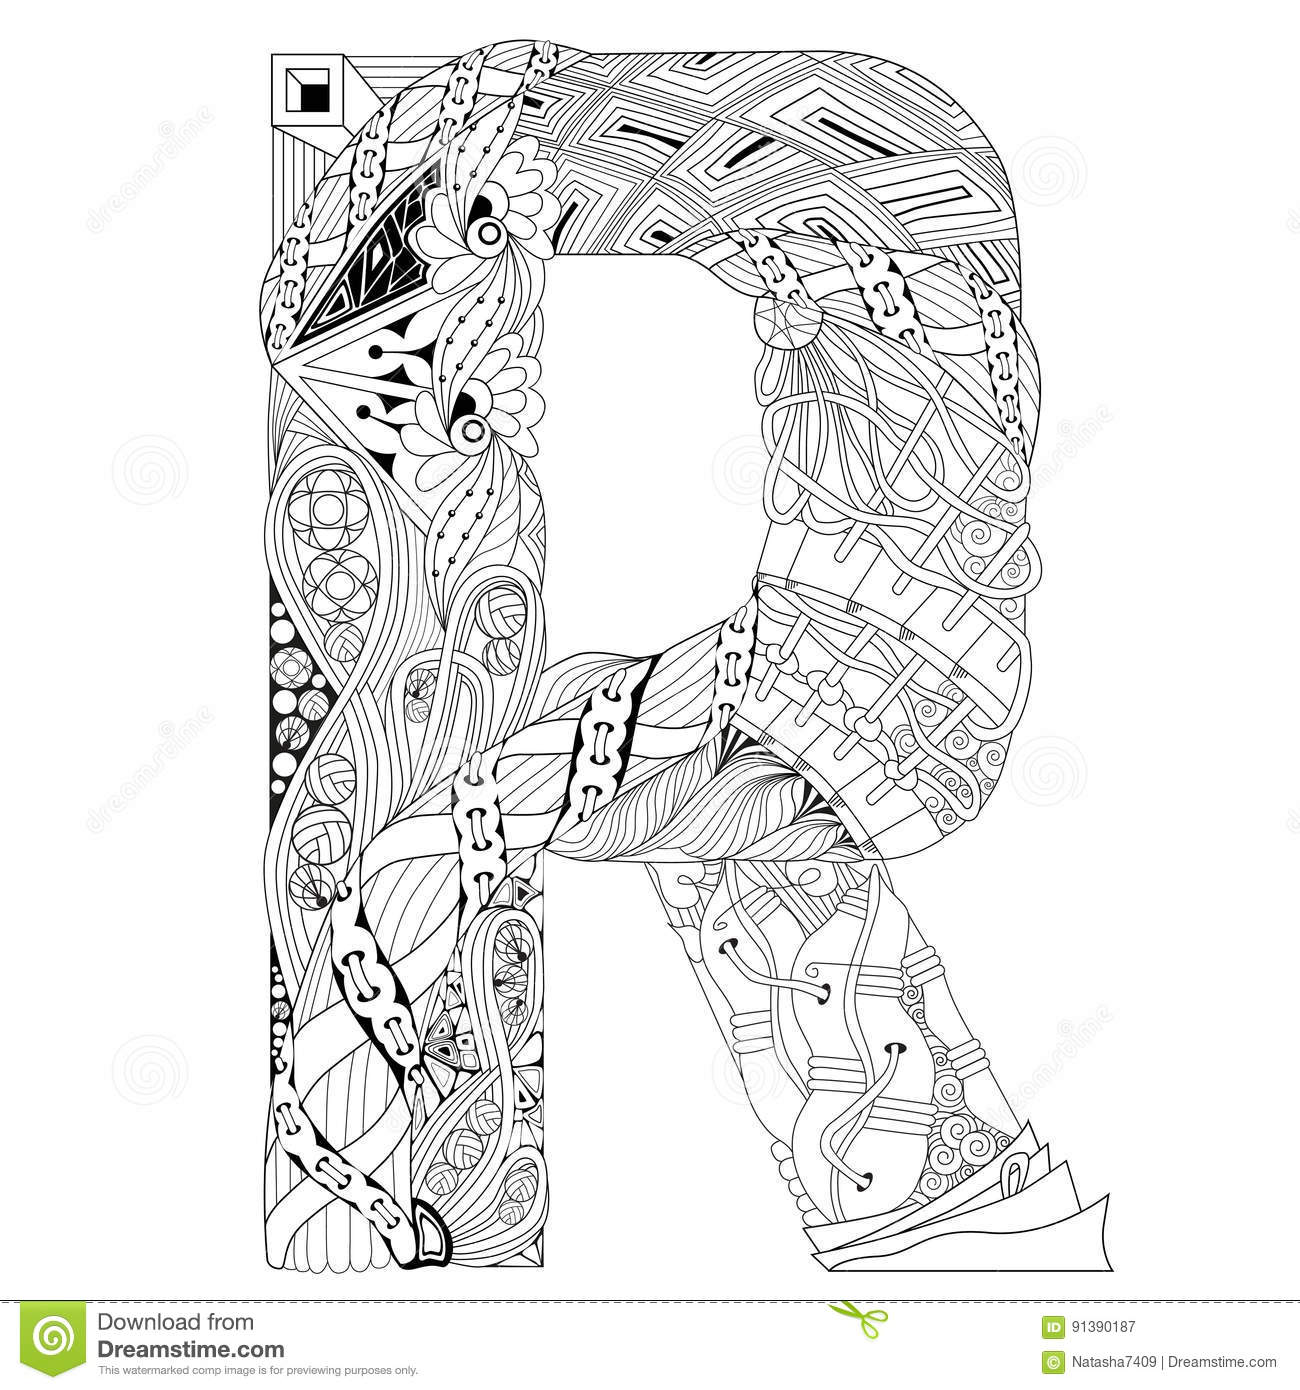 letter r coloring pages for adults letter r coloring pages for adults letter r for coloring adults pages